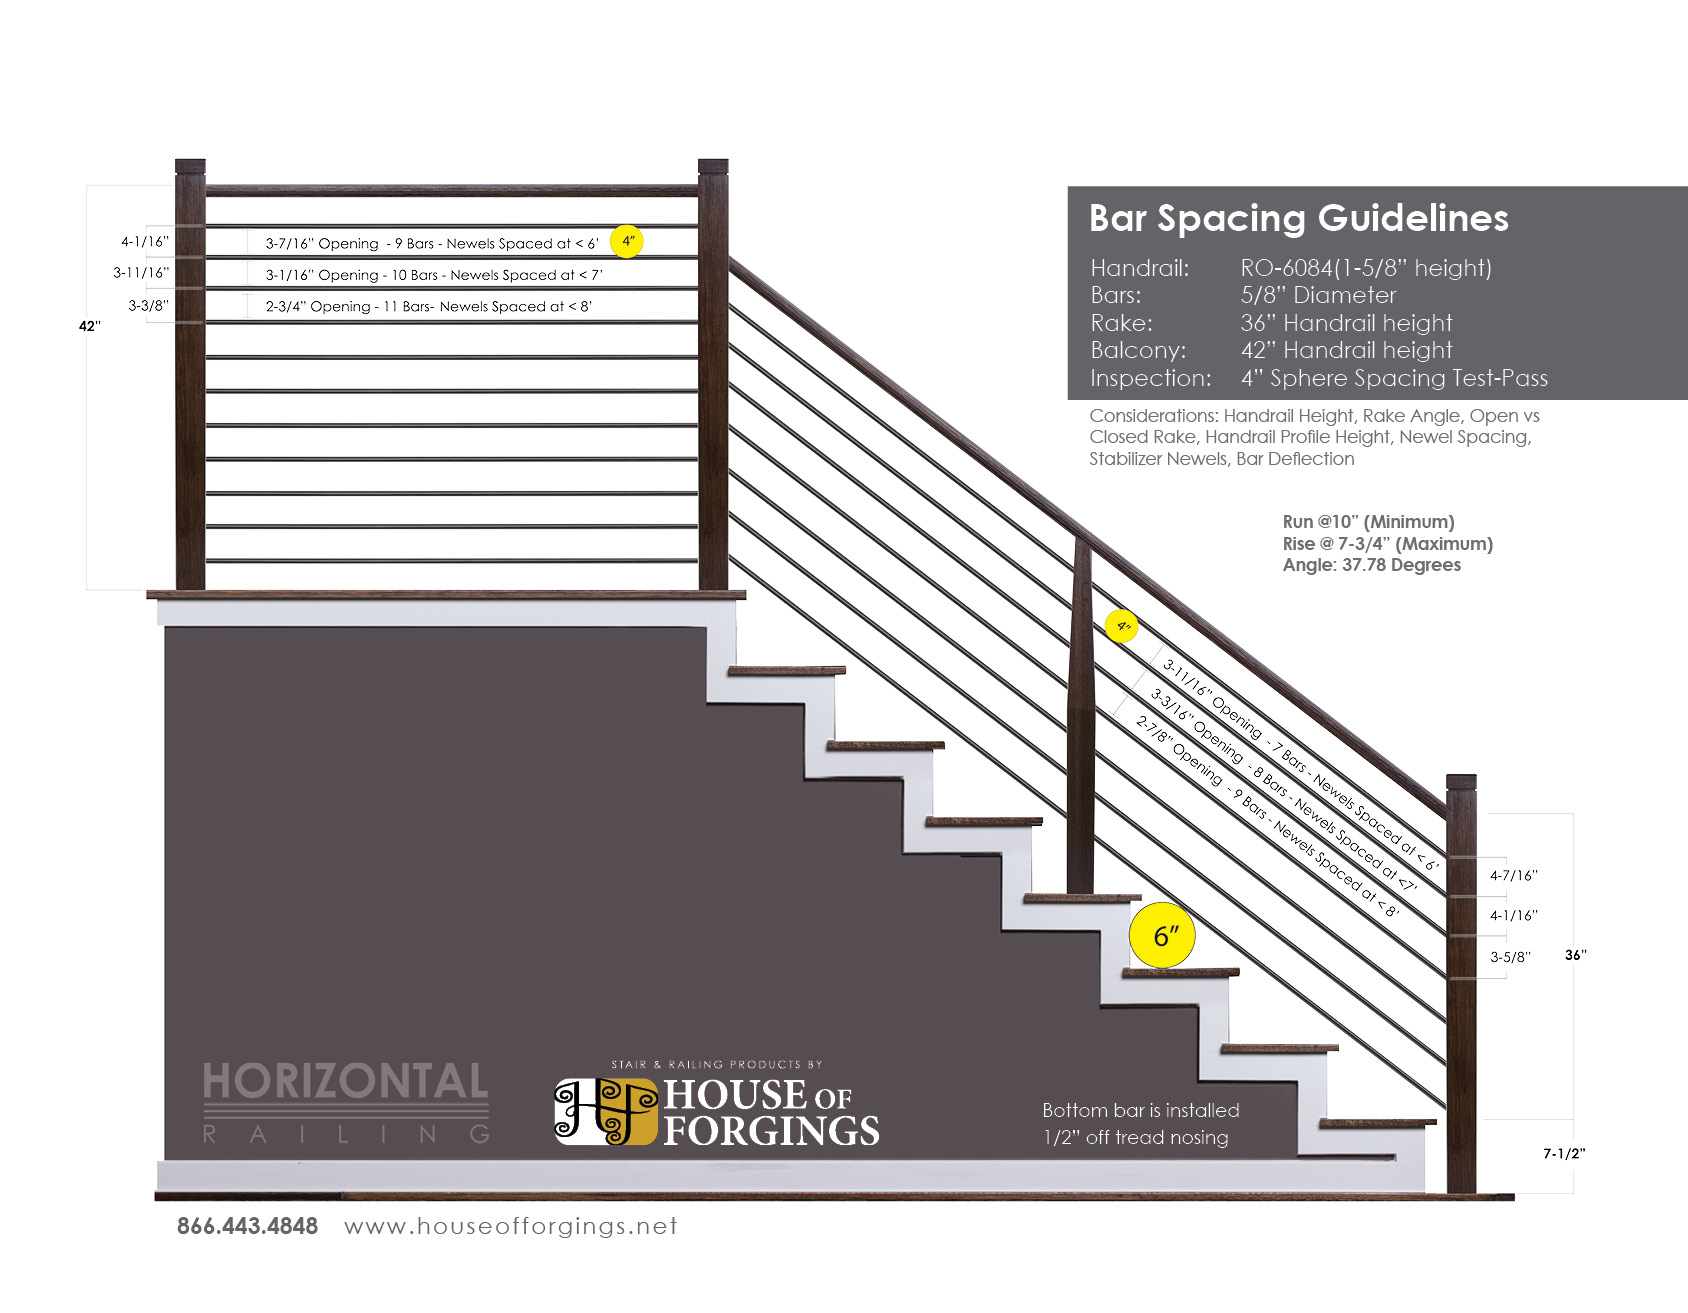 Affordable Horizontal Railing Now Available